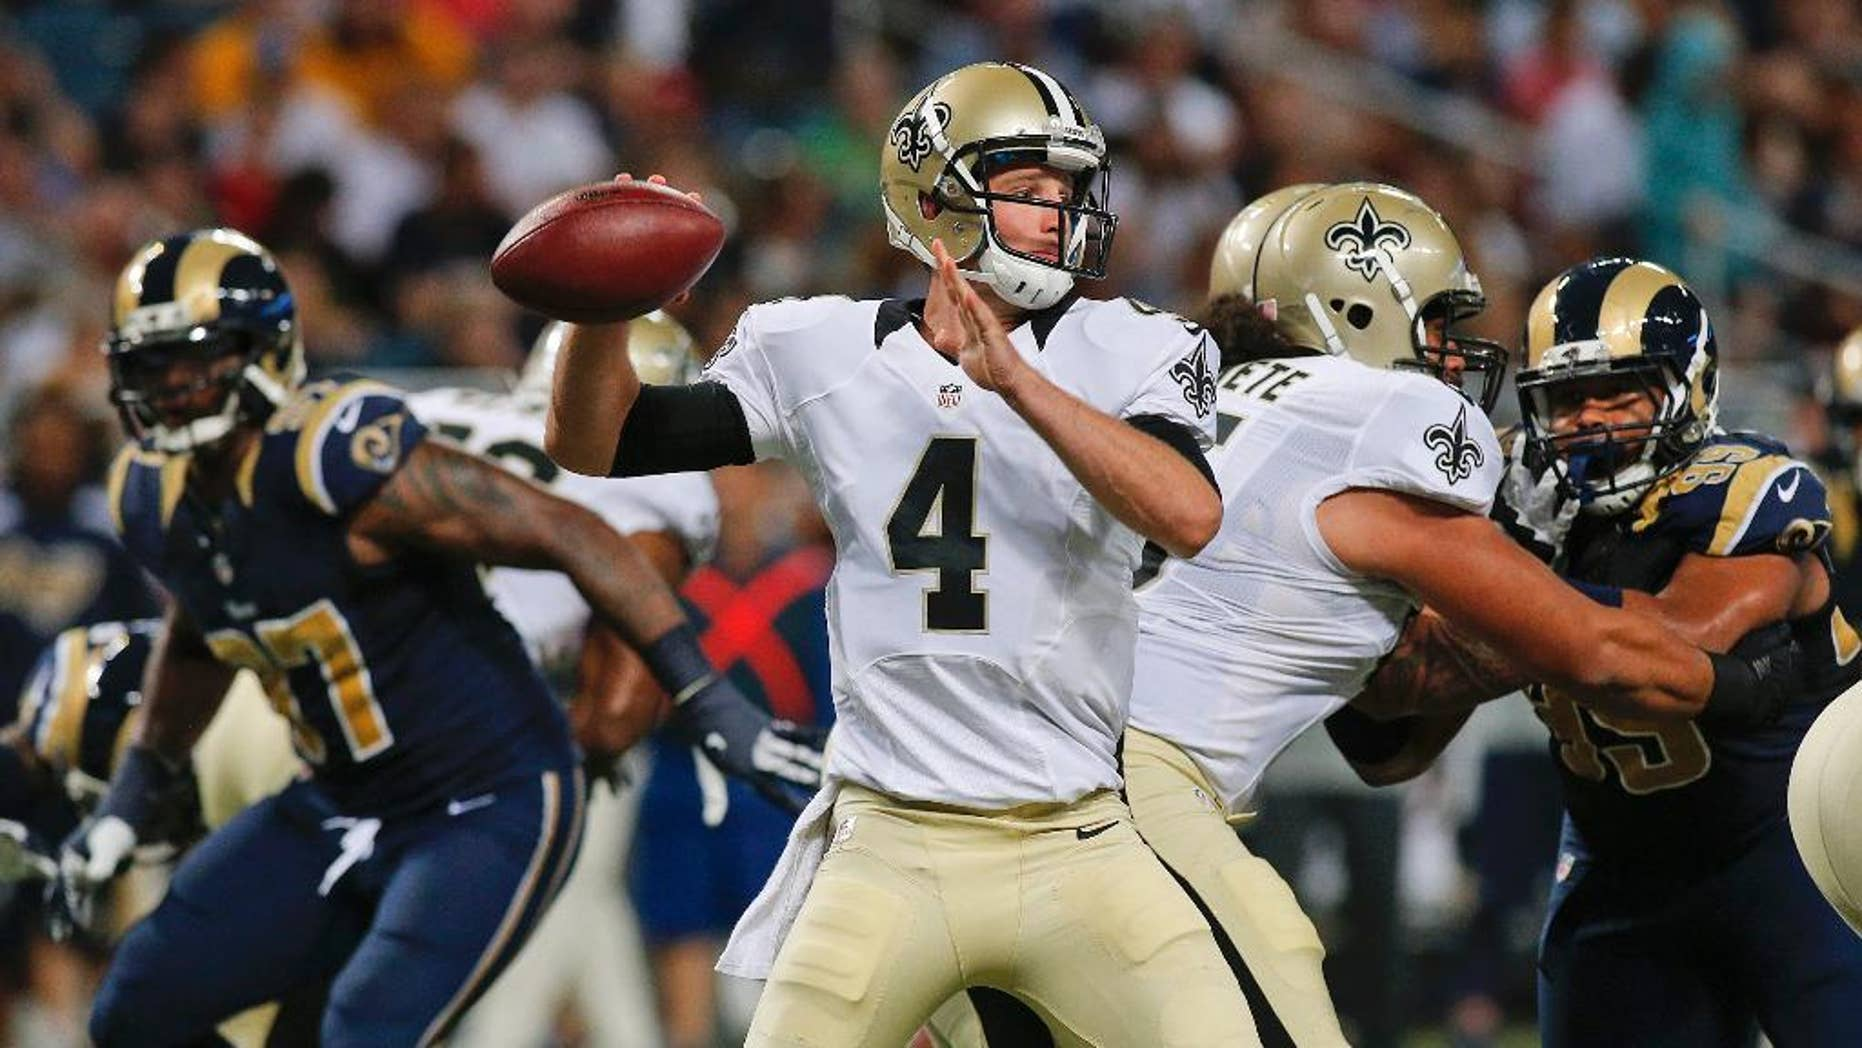 New Orleans Saints quarterback Ryan Griffin (4) passes against the St. Louis Rams during the first quarter of a preseason NFL football game Friday, Aug. 8, 2014, in St. Louis. (AP Photo/Scott Kane)